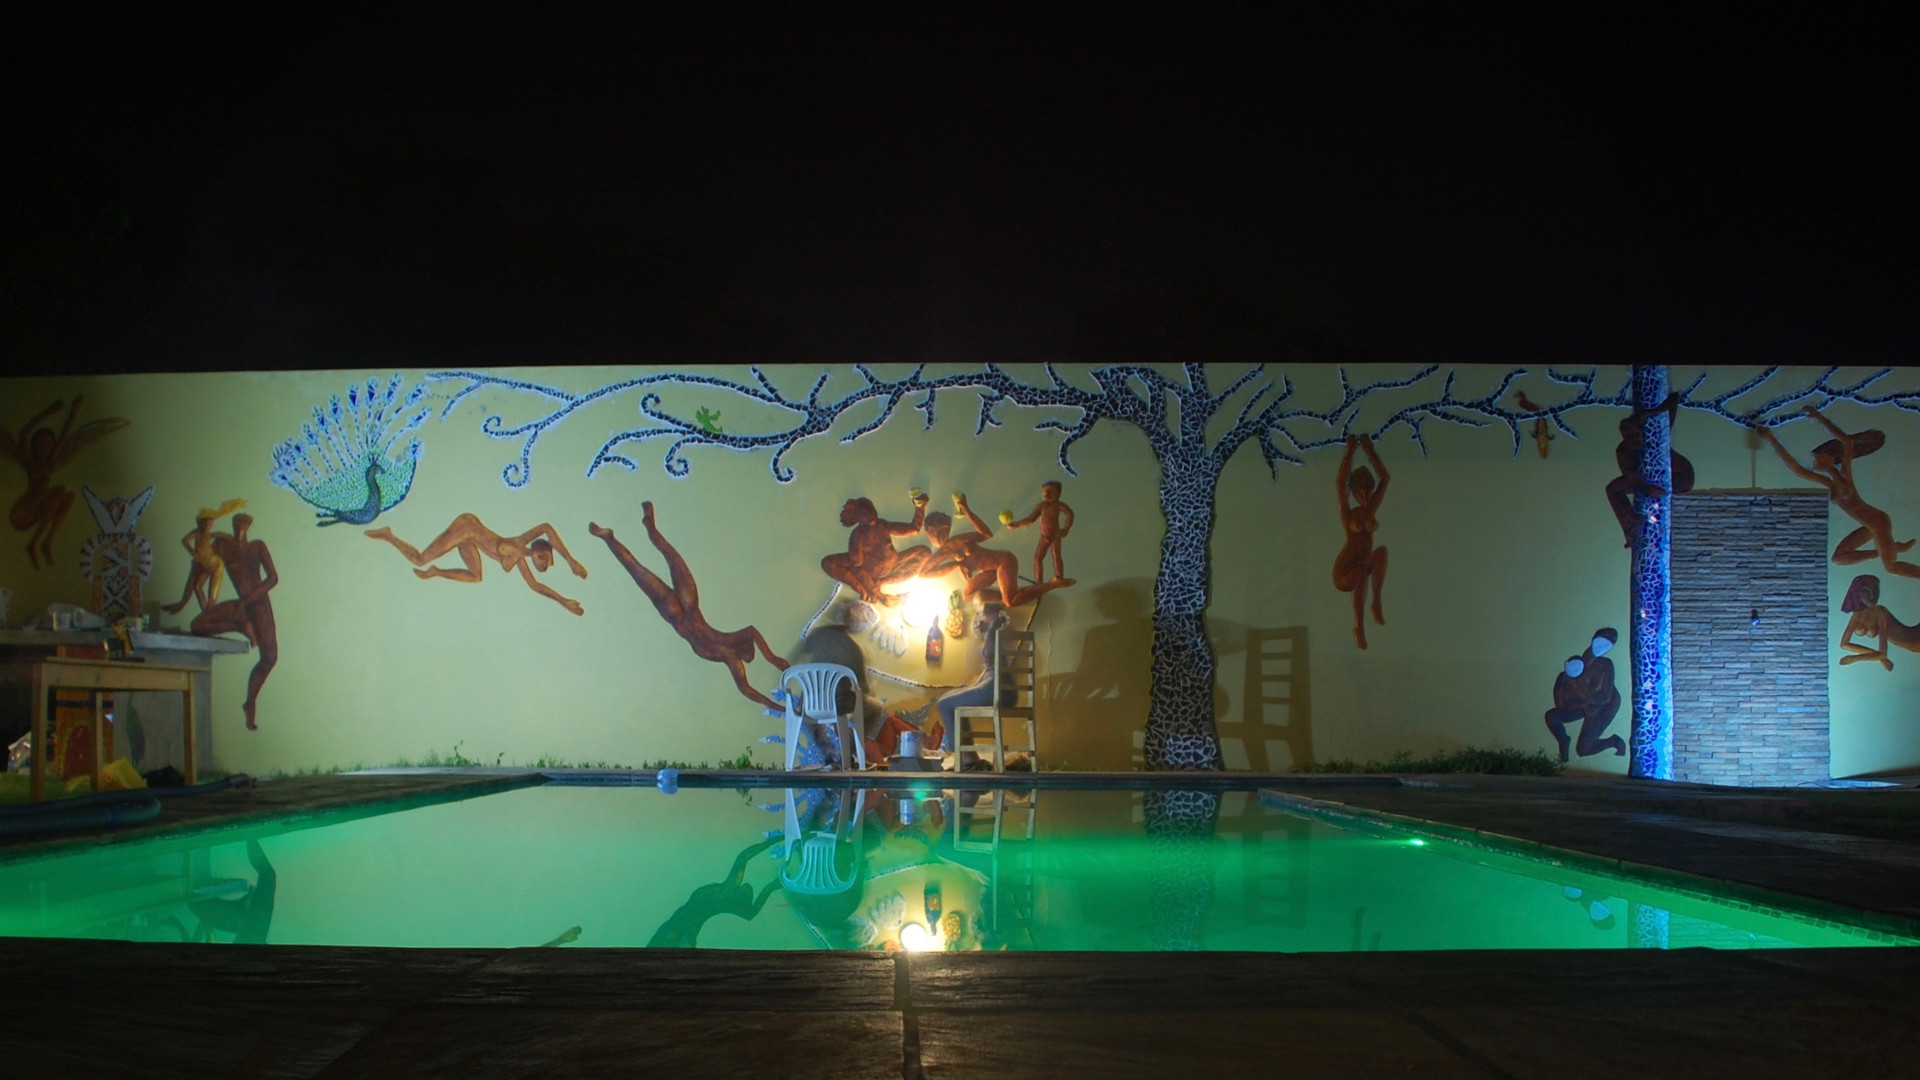 mural by night .jpg